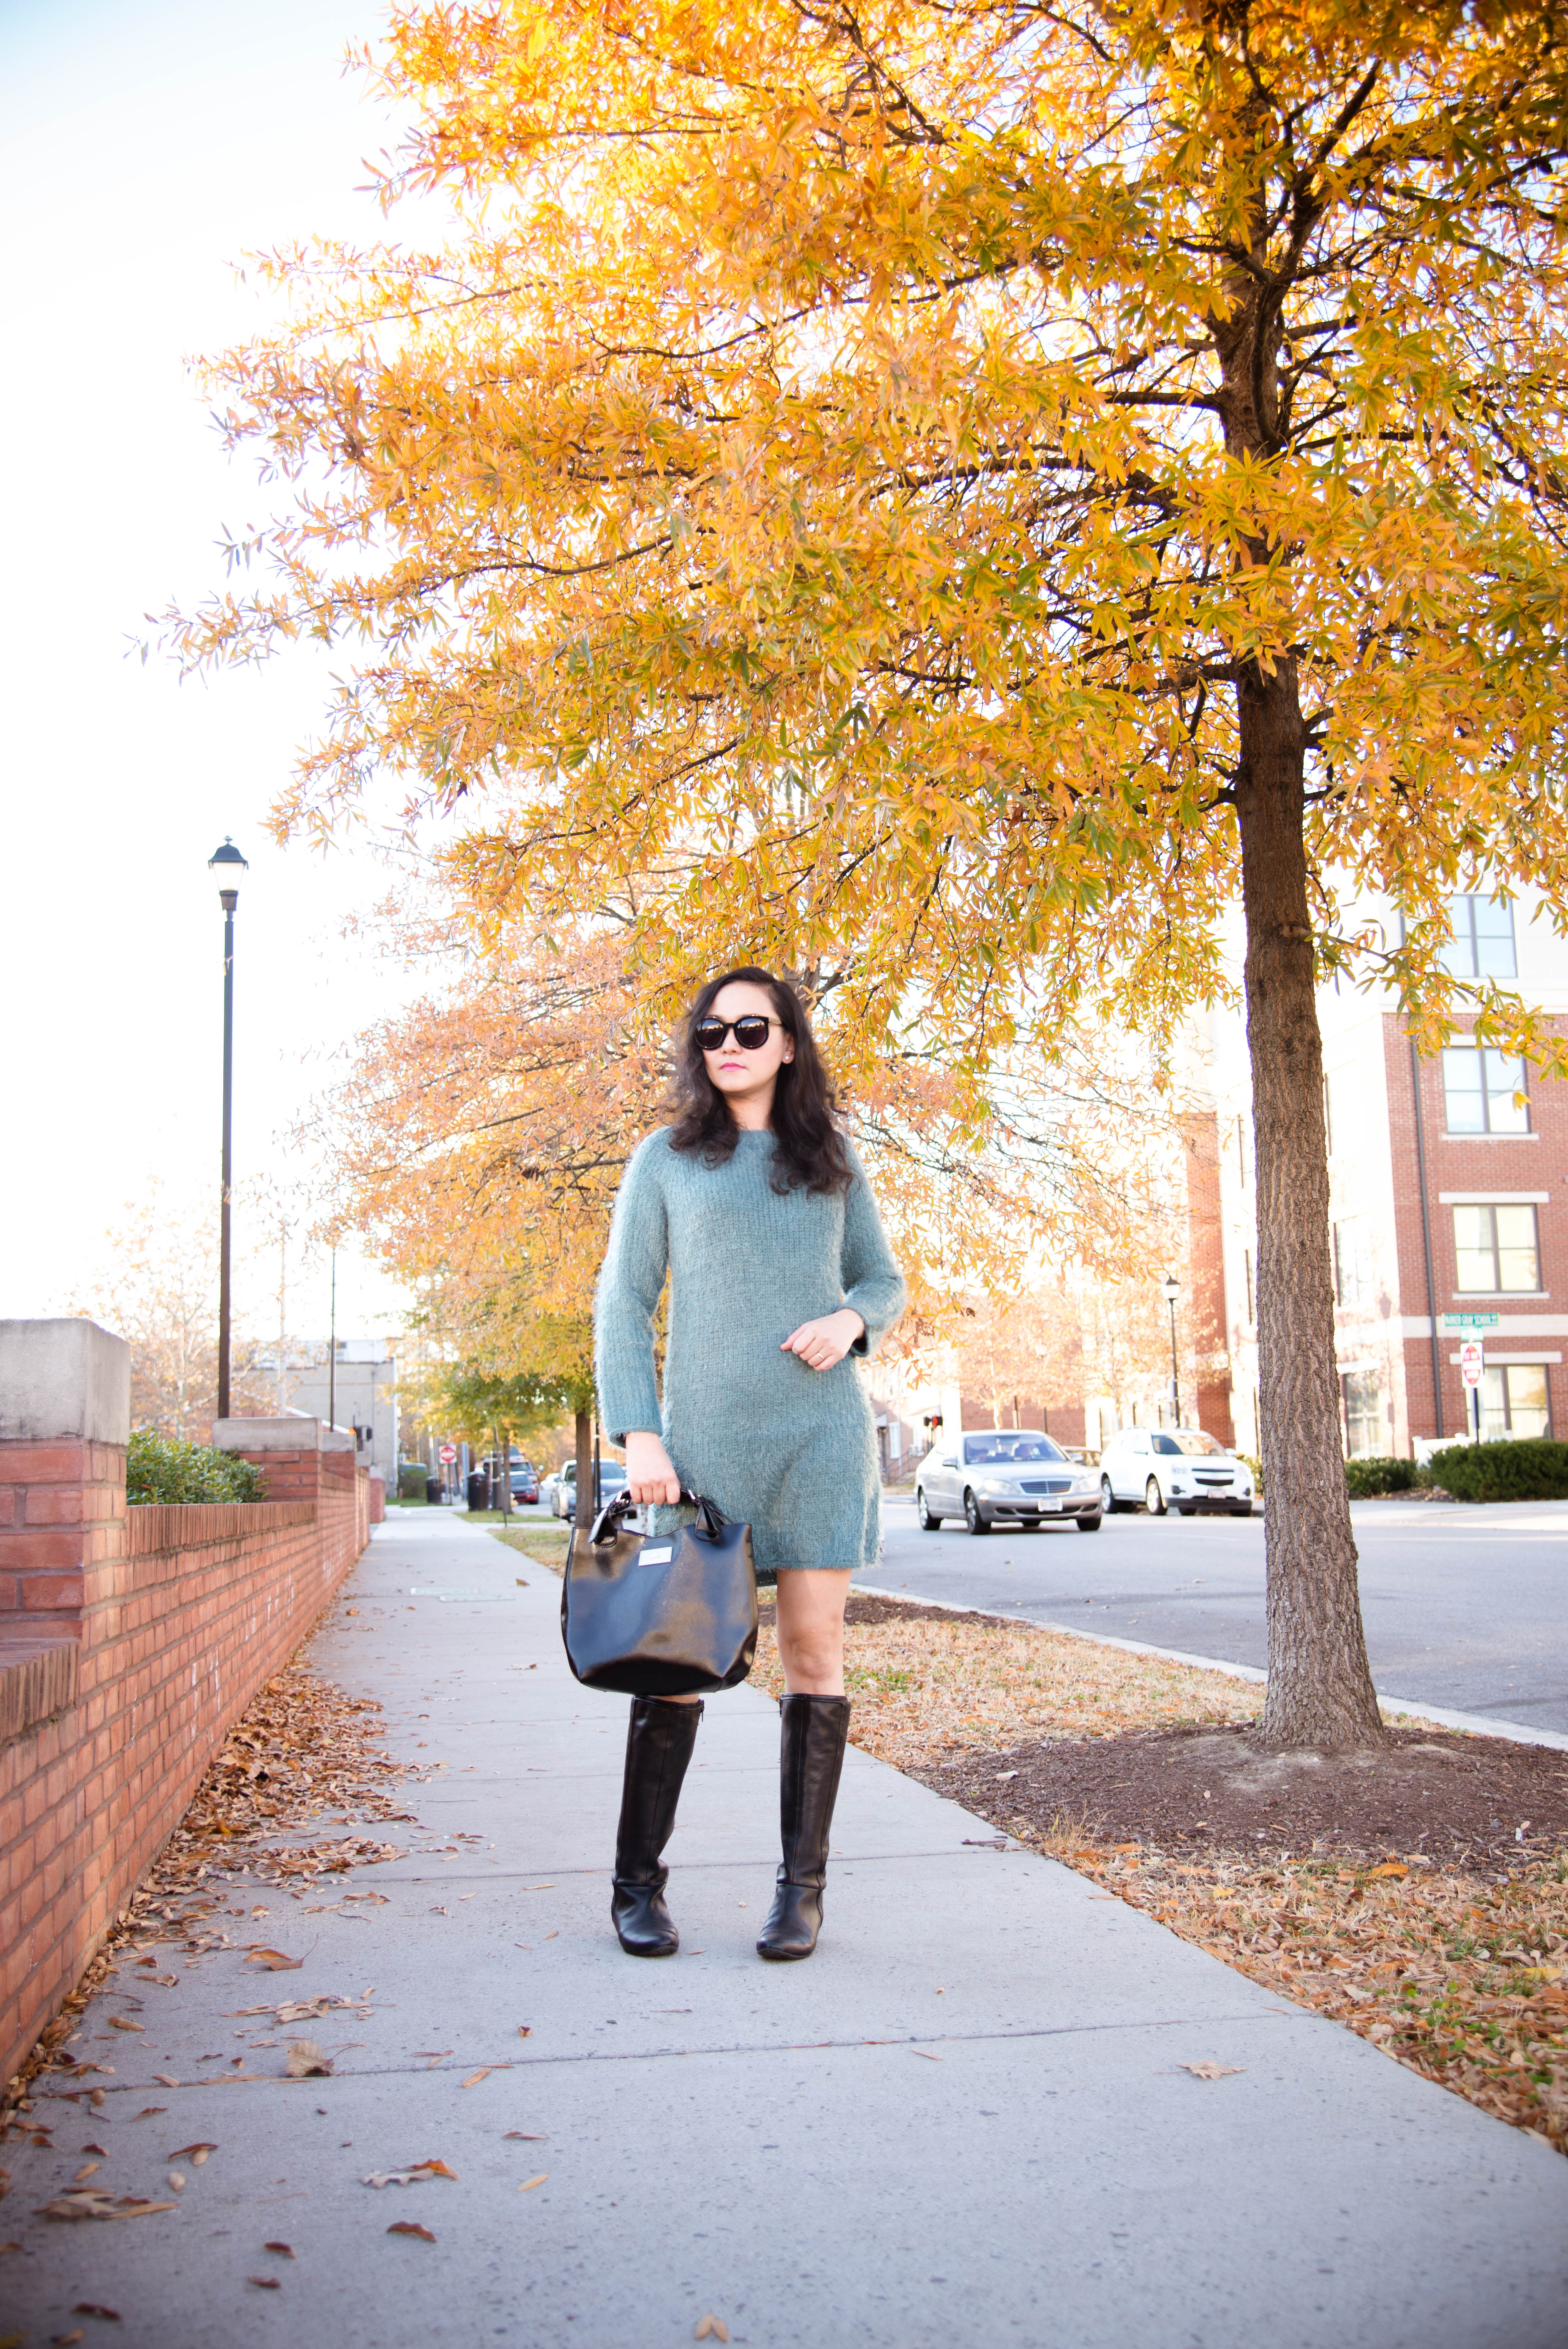 Coziest Fall Outfit in Fuzzy Knit Dress